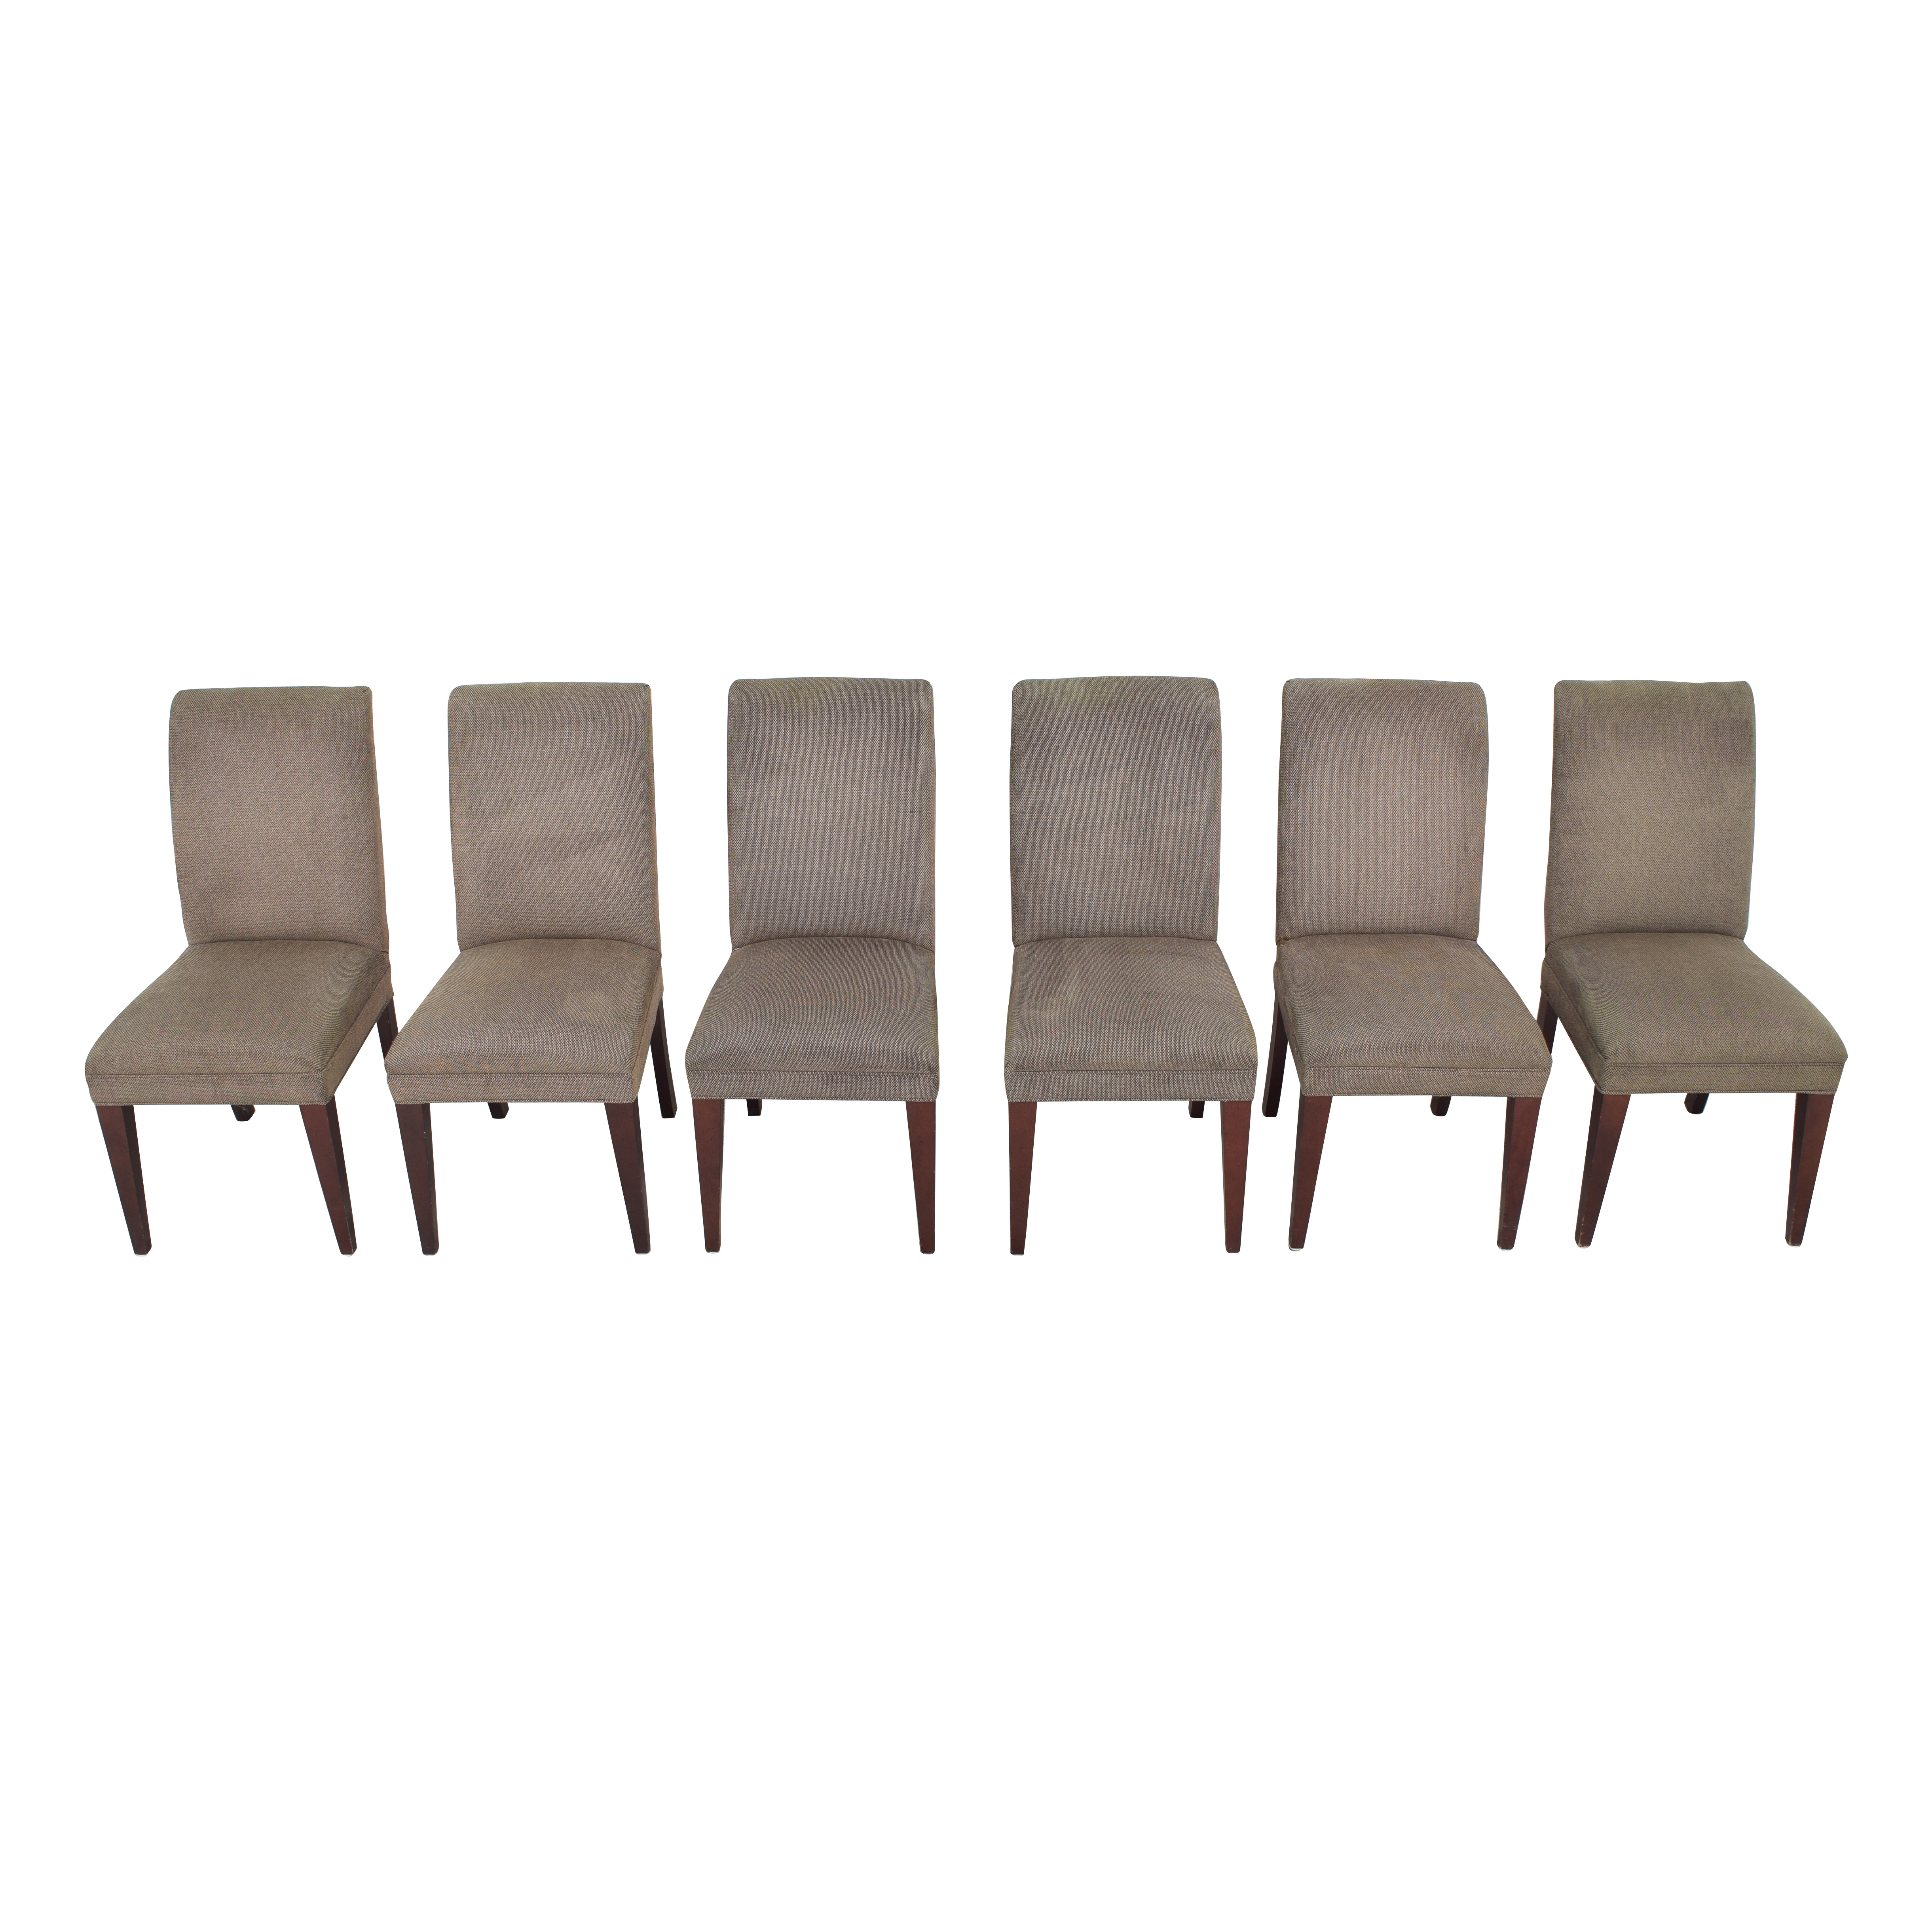 Restoration Hardware Restoration Hardware Grayson Dining Chairs discount